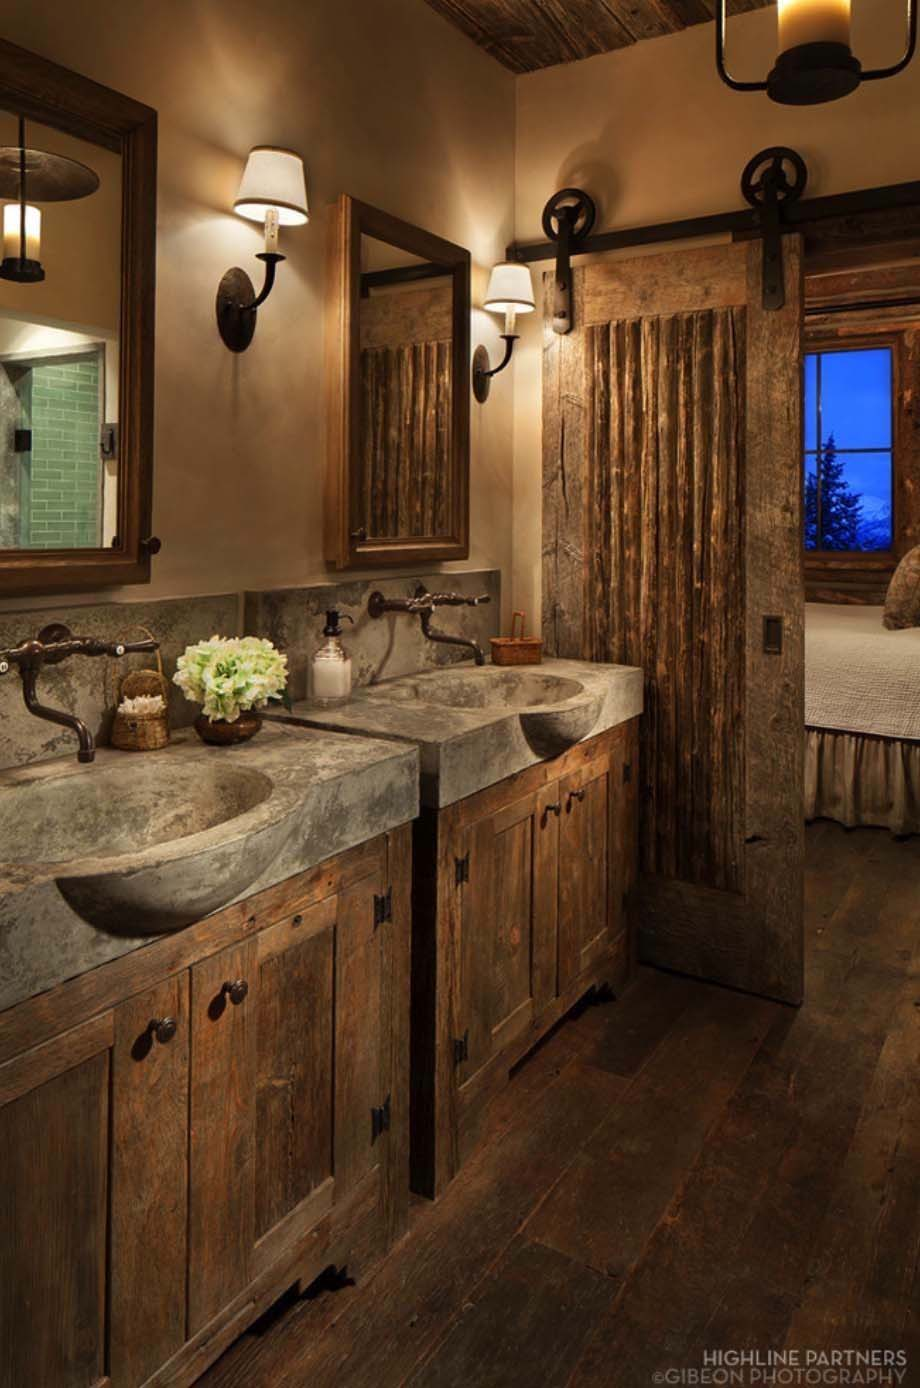 home style ideas. Rustic Bathroom D cor with Concrete Sinks and Barn Door 31 Best Design Decor Ideas for 2018